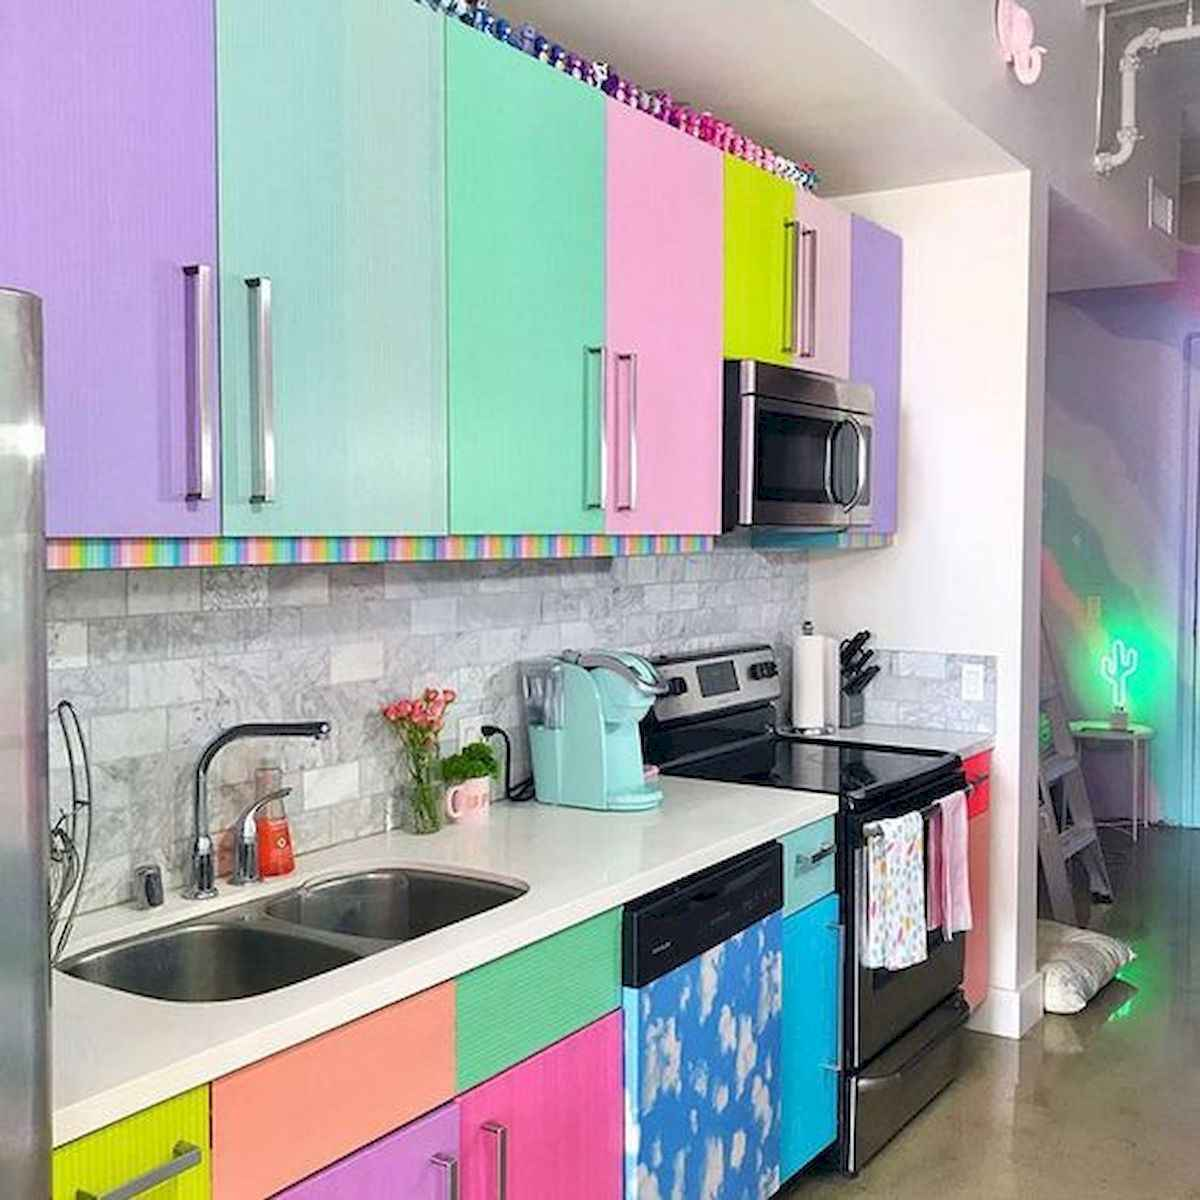 80+ Favorite Colorful Kitchen Decor Ideas And Remodel for Summer Project (69)